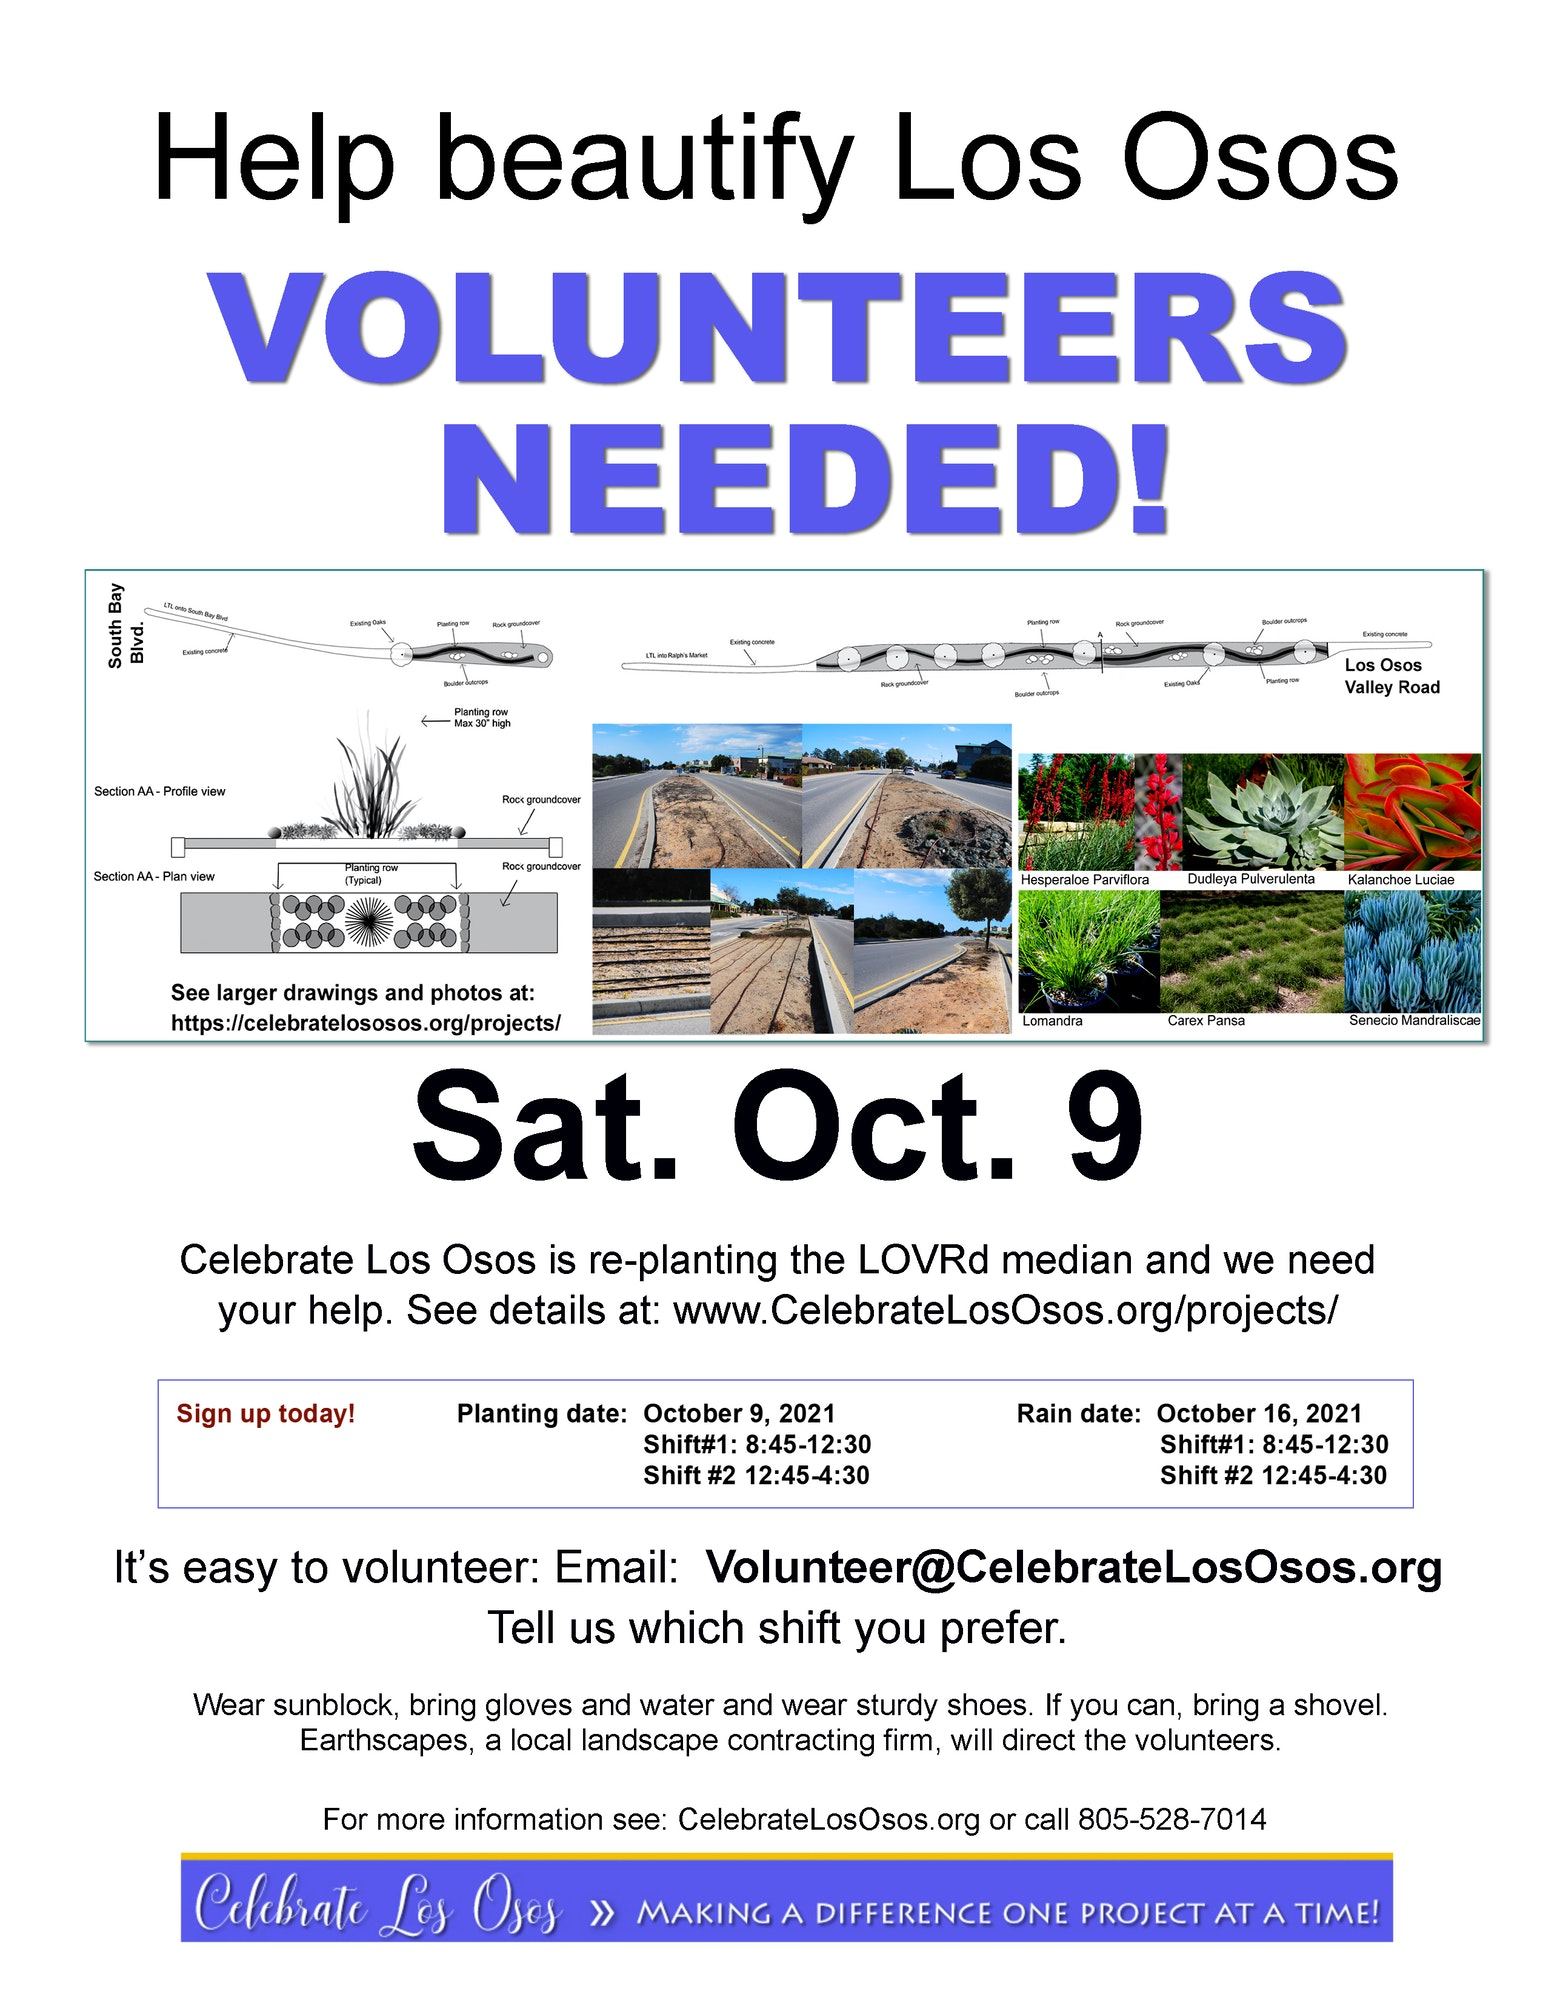 May contain: flyer; celebratelososos.com, Volunteers needed to add flowers to Los Osos Median